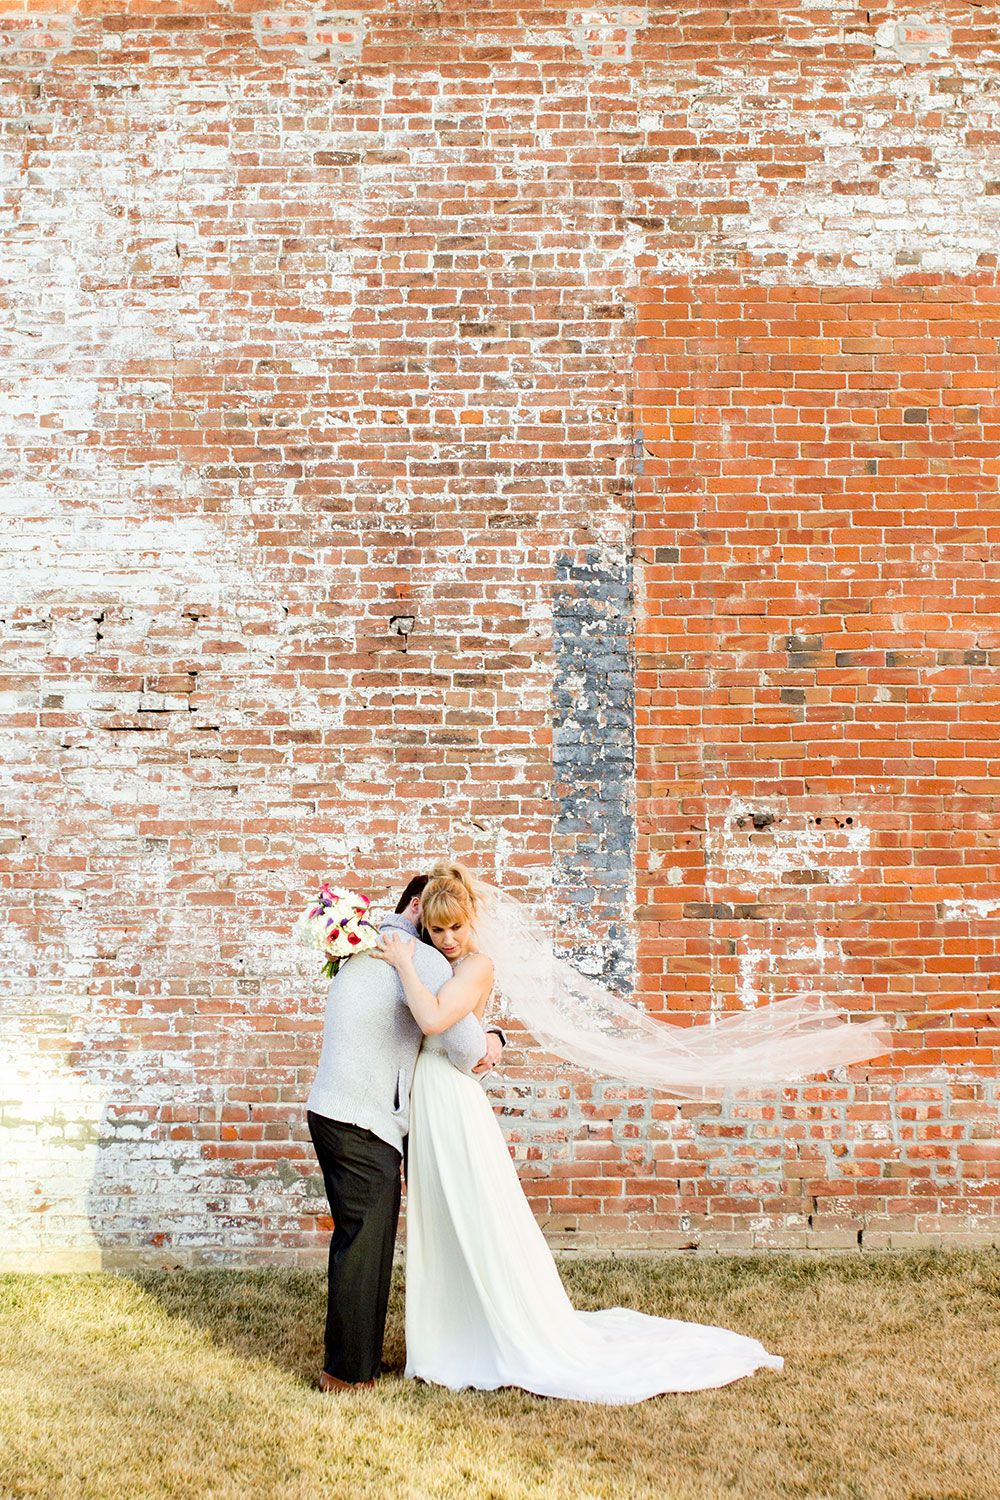 Wedding Day Photography - BrightSide Creative - Omaha, NE Photographer